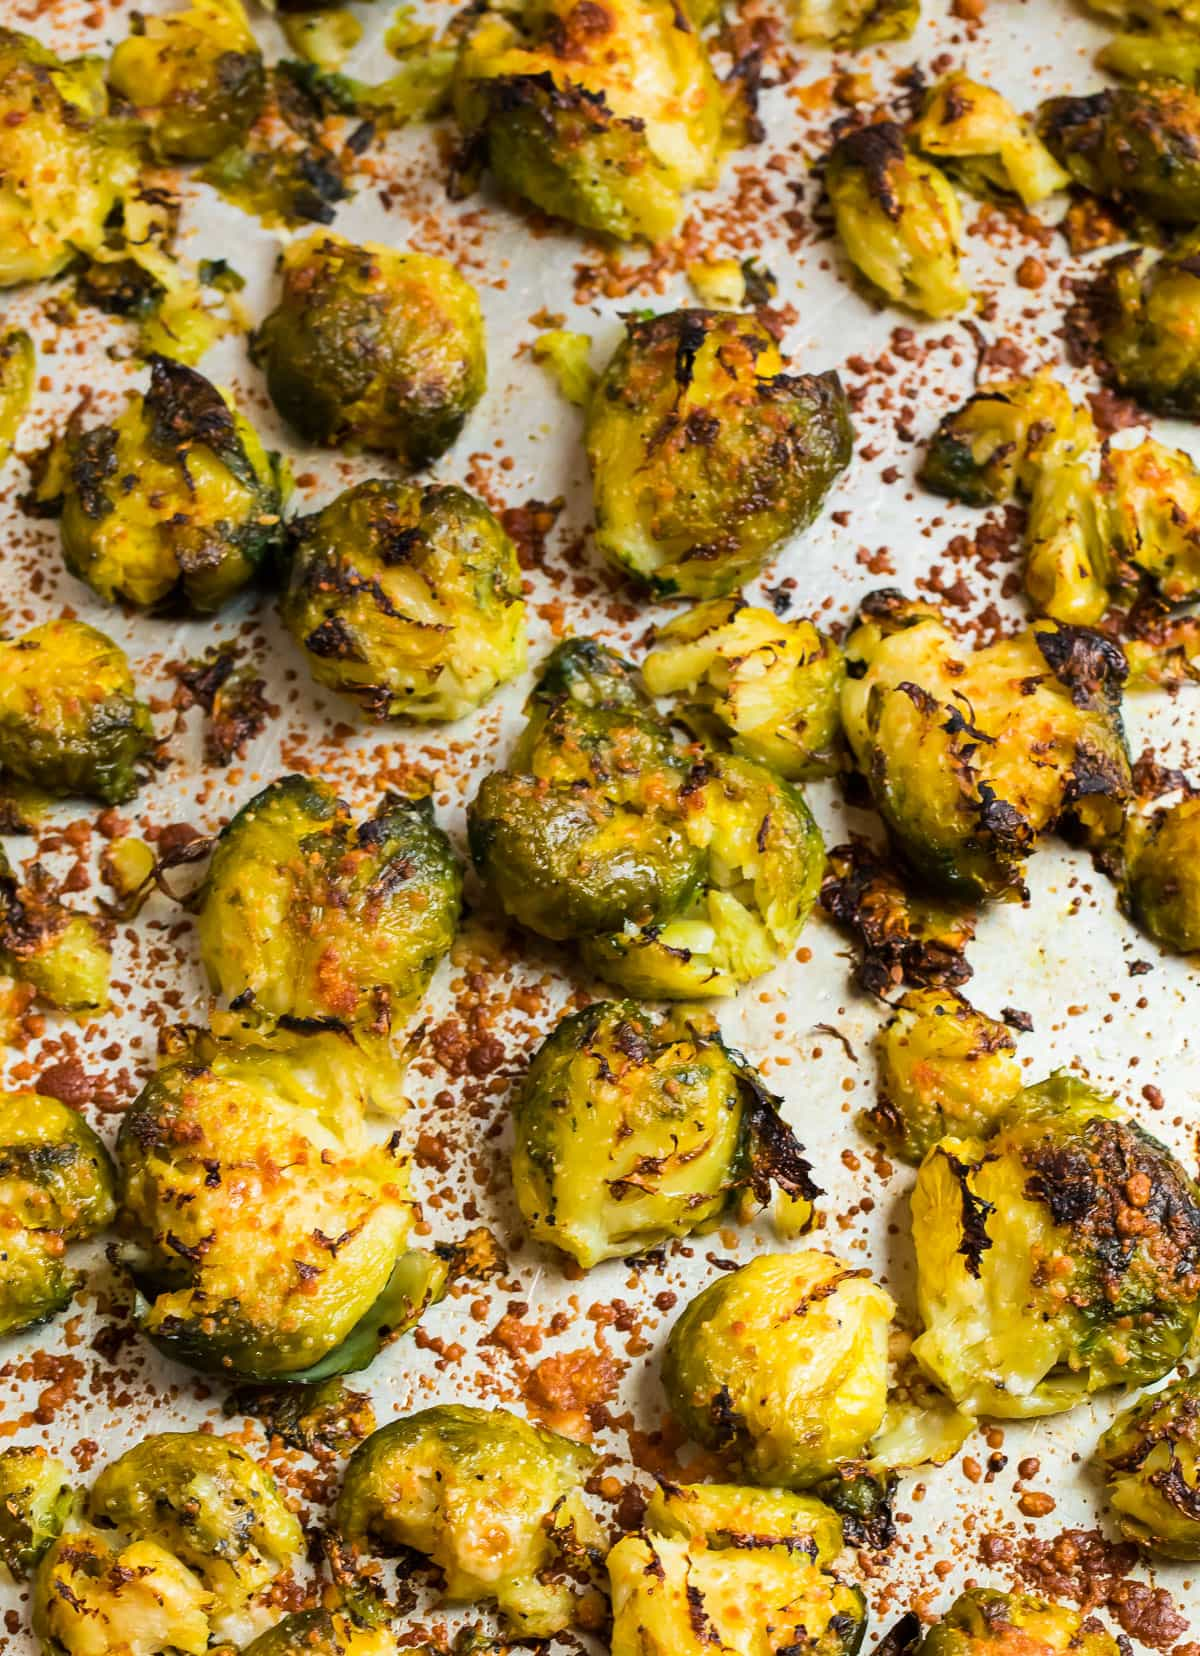 Roasted smashed Brussels sprouts with cheese